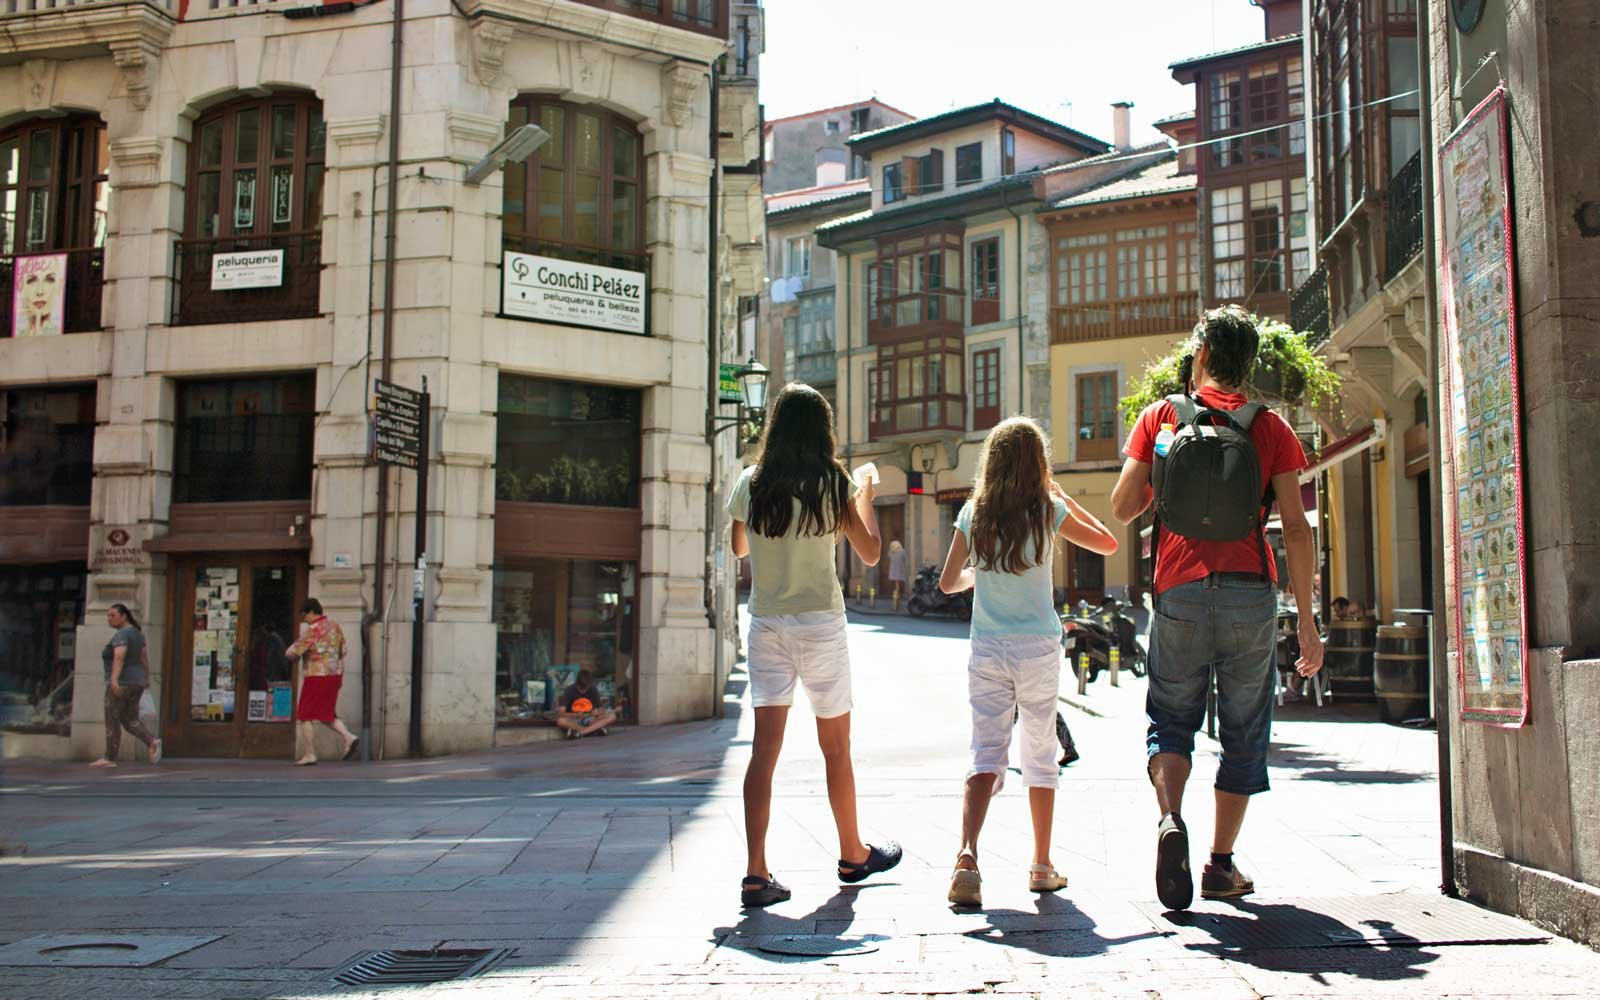 Father with his girls walking the streets of Llanes, Spain.